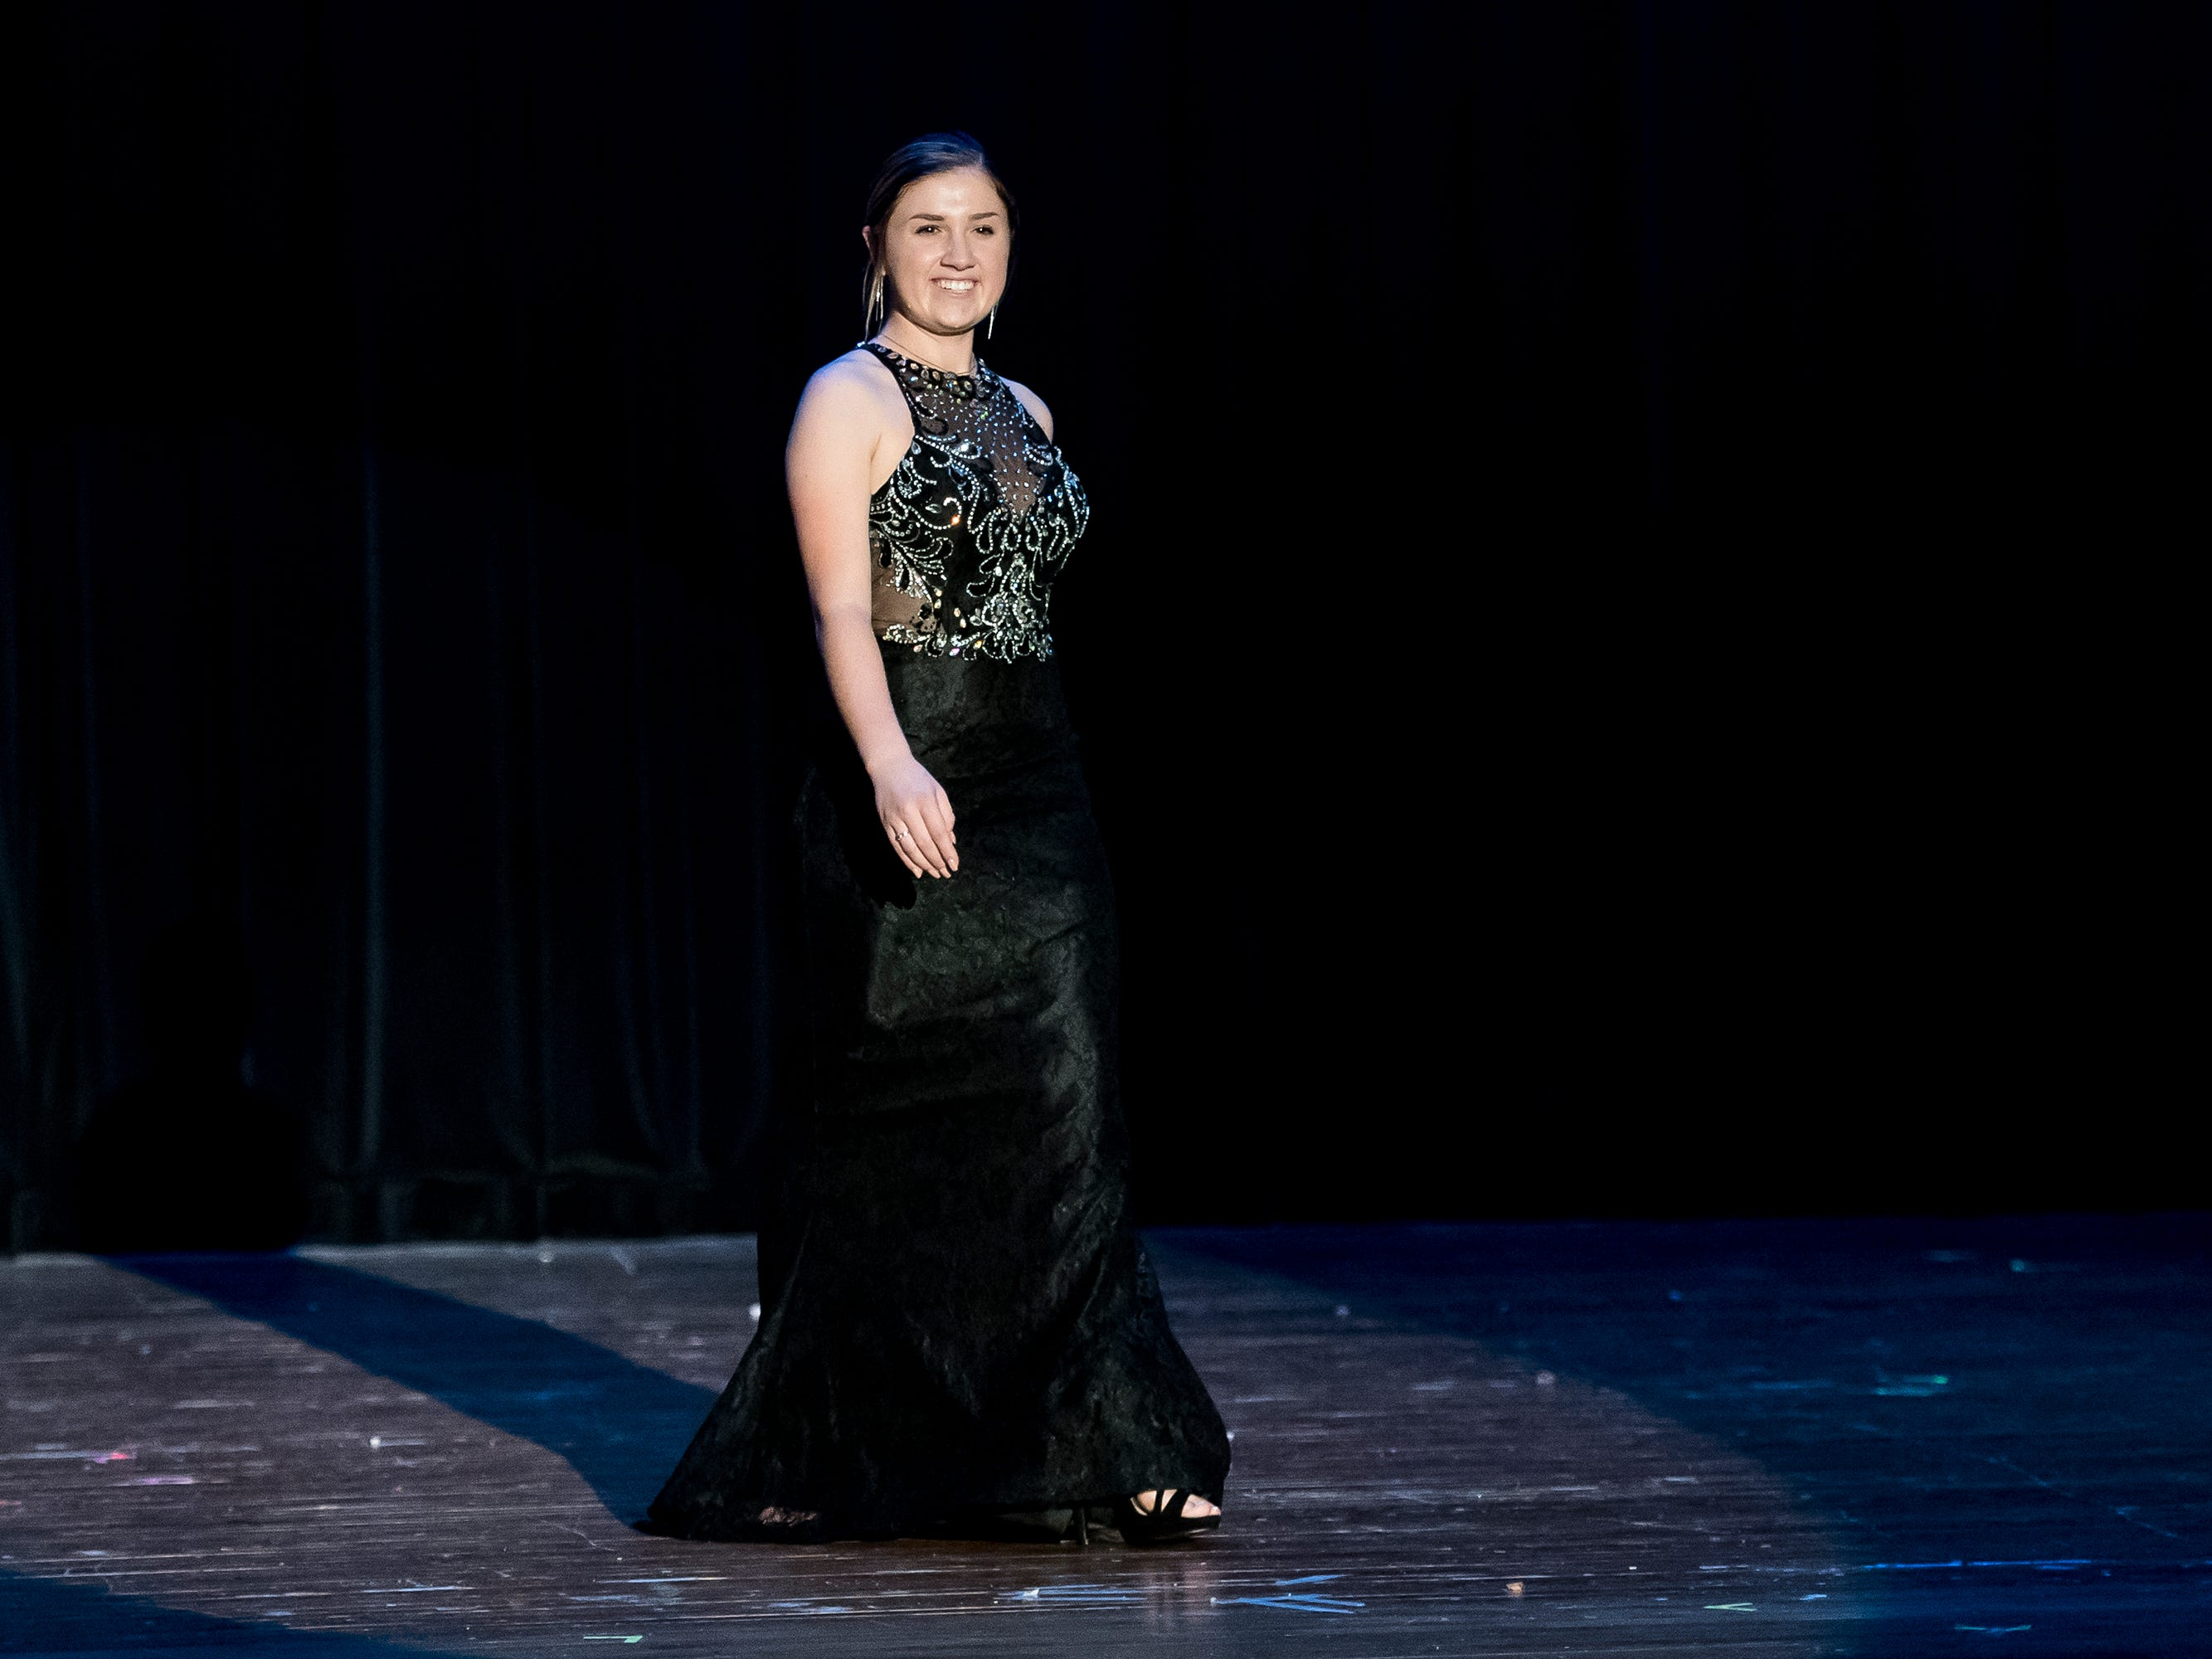 Spring Grove's Hannah Nell walks on stage in her evening gown during a rehearsal session for the Miss Hanover Area pageant at New Oxford High School on Oct. 17, 2018.